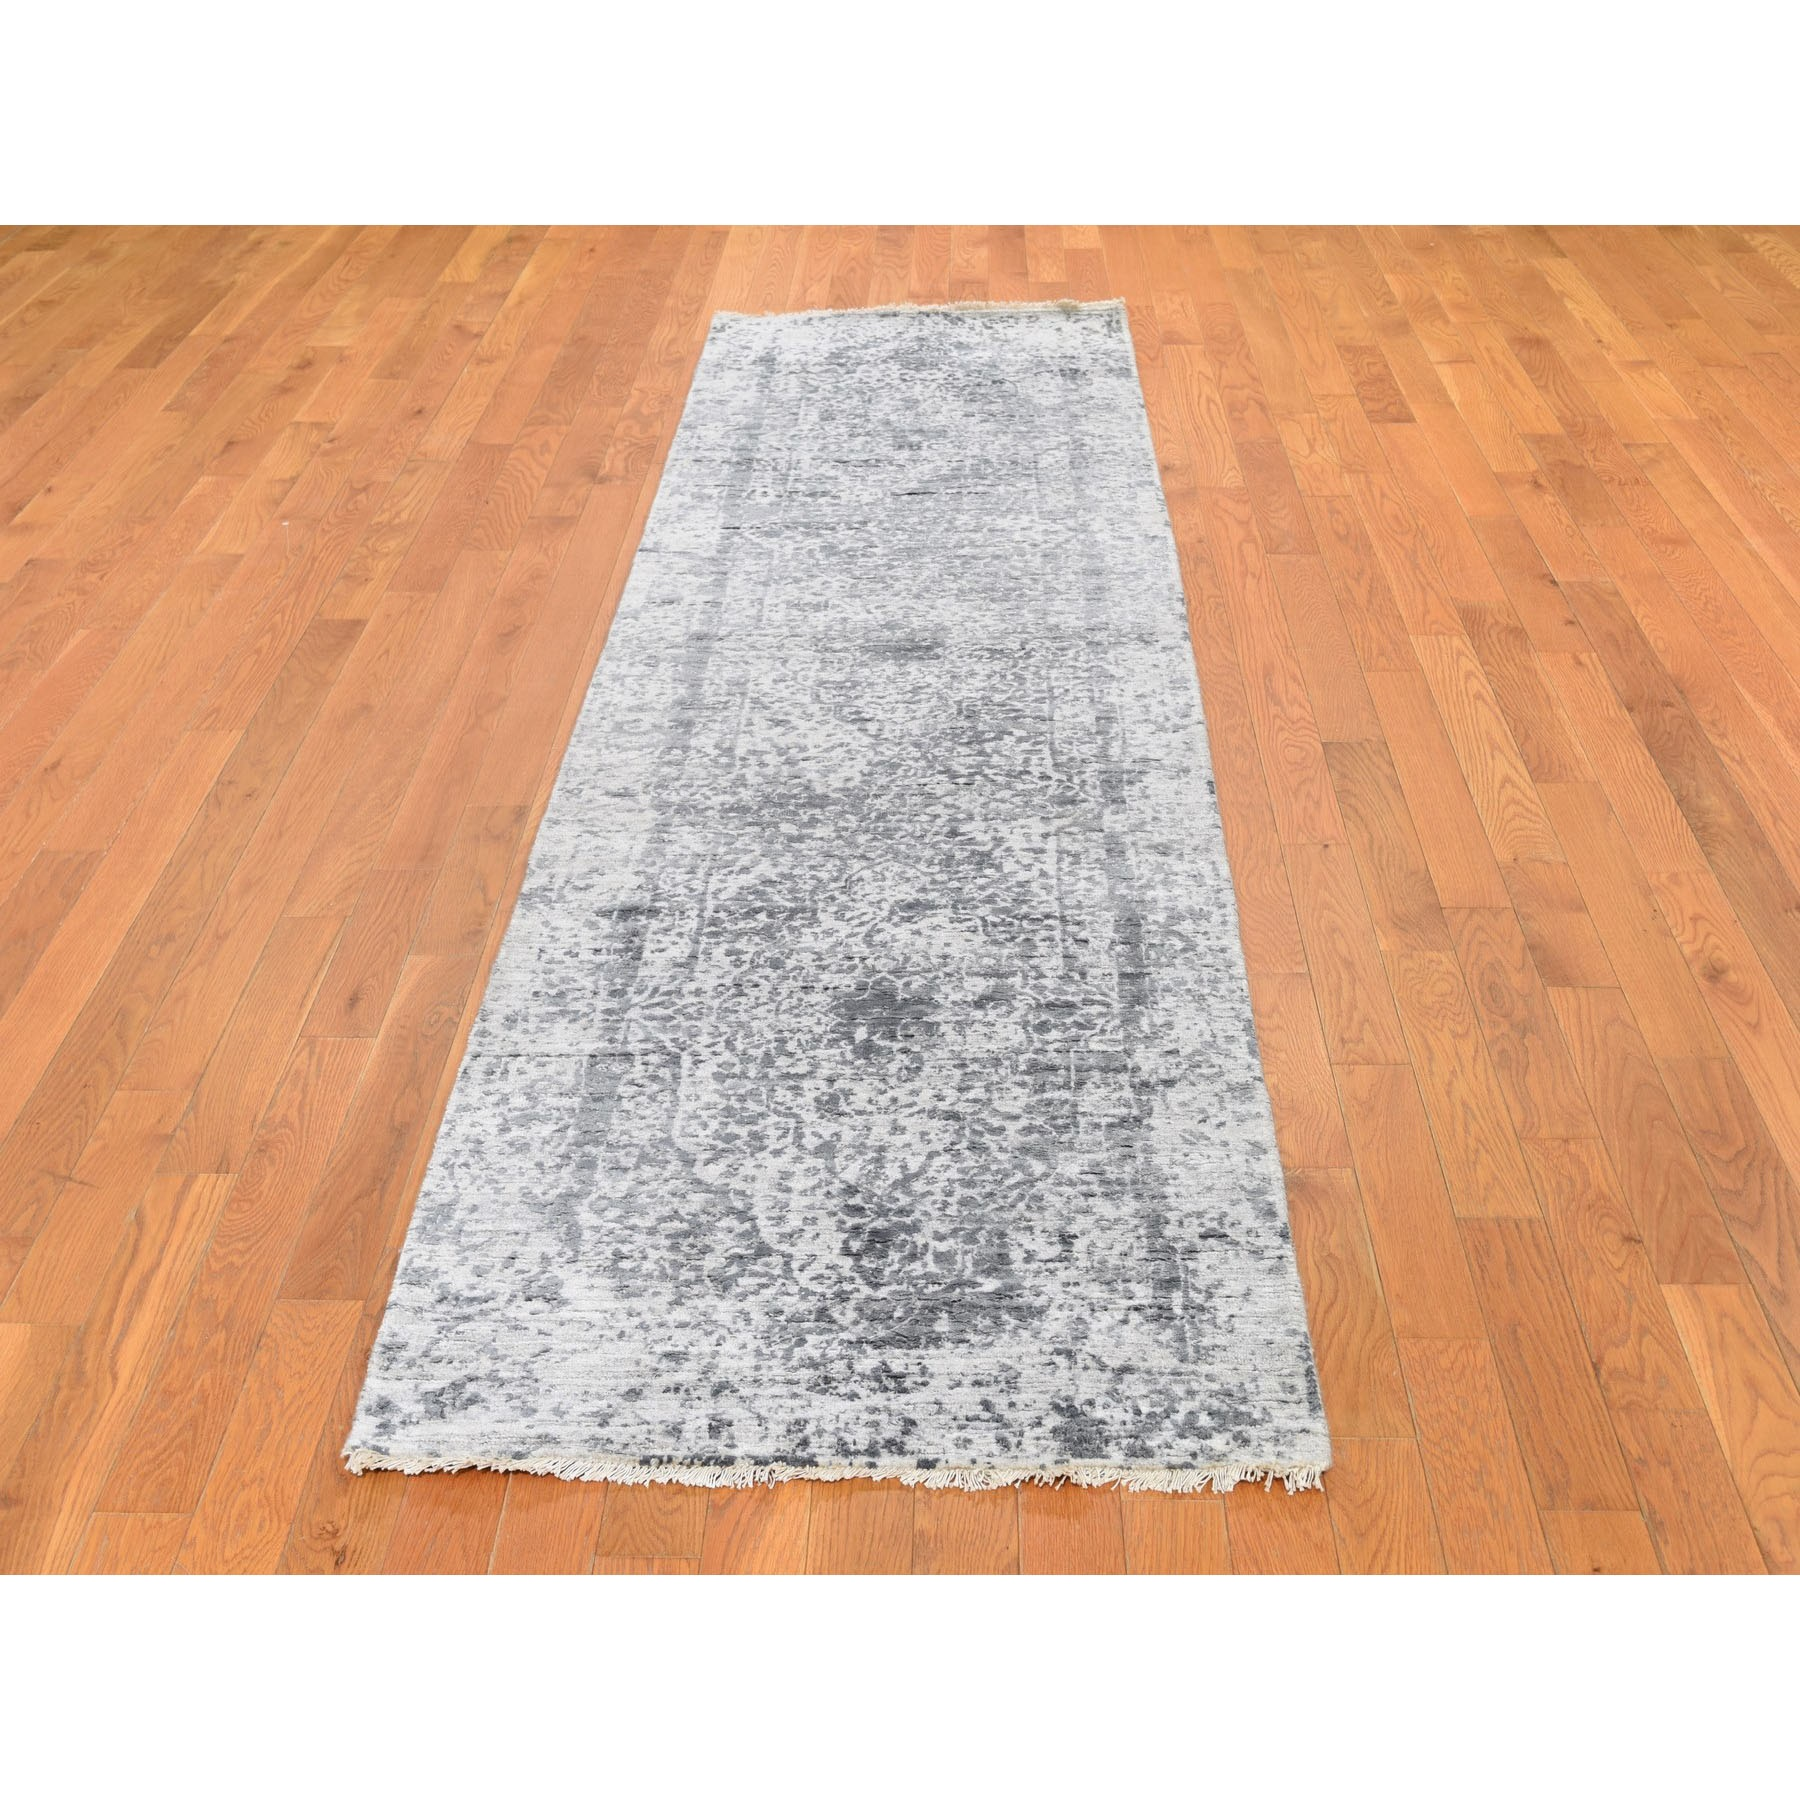 "2'8""x10' Silver-Dark Gray Erased Persian Design Runner Wool and Pure Silk Hand Knotted Oriental Rug"